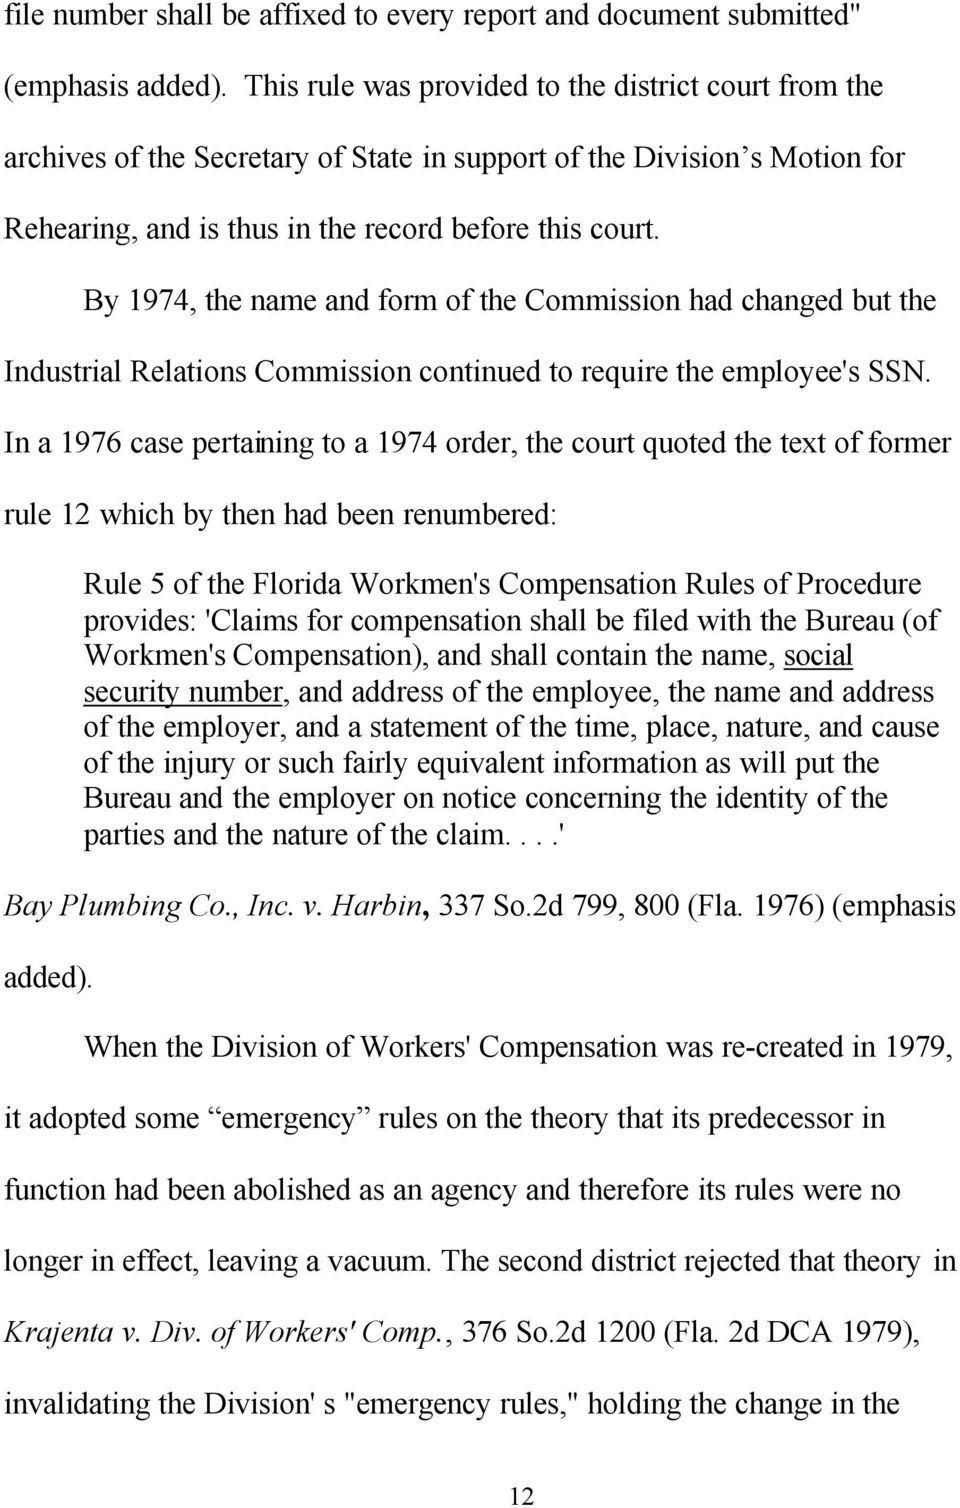 By 1974, the name and form of the Commission had changed but the Industrial Relations Commission continued to require the employee's SSN.